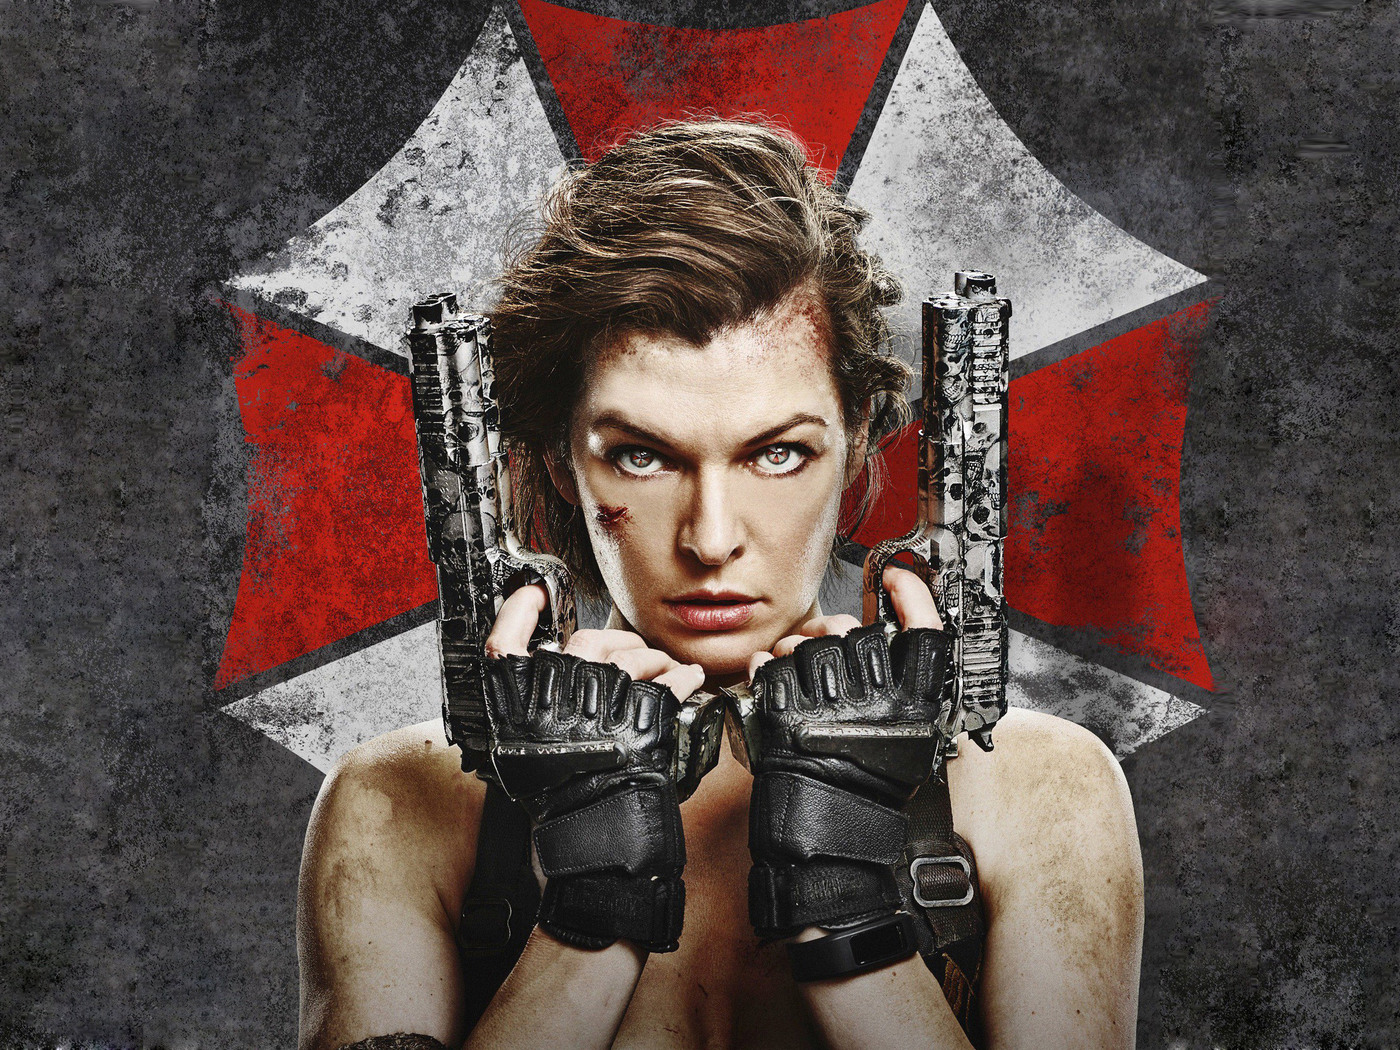 Resident Evil The Final Chapter 2016 Movie Hd Wallpaper: 1400x1050 Resident Evil The Final Chapter 4k 1400x1050